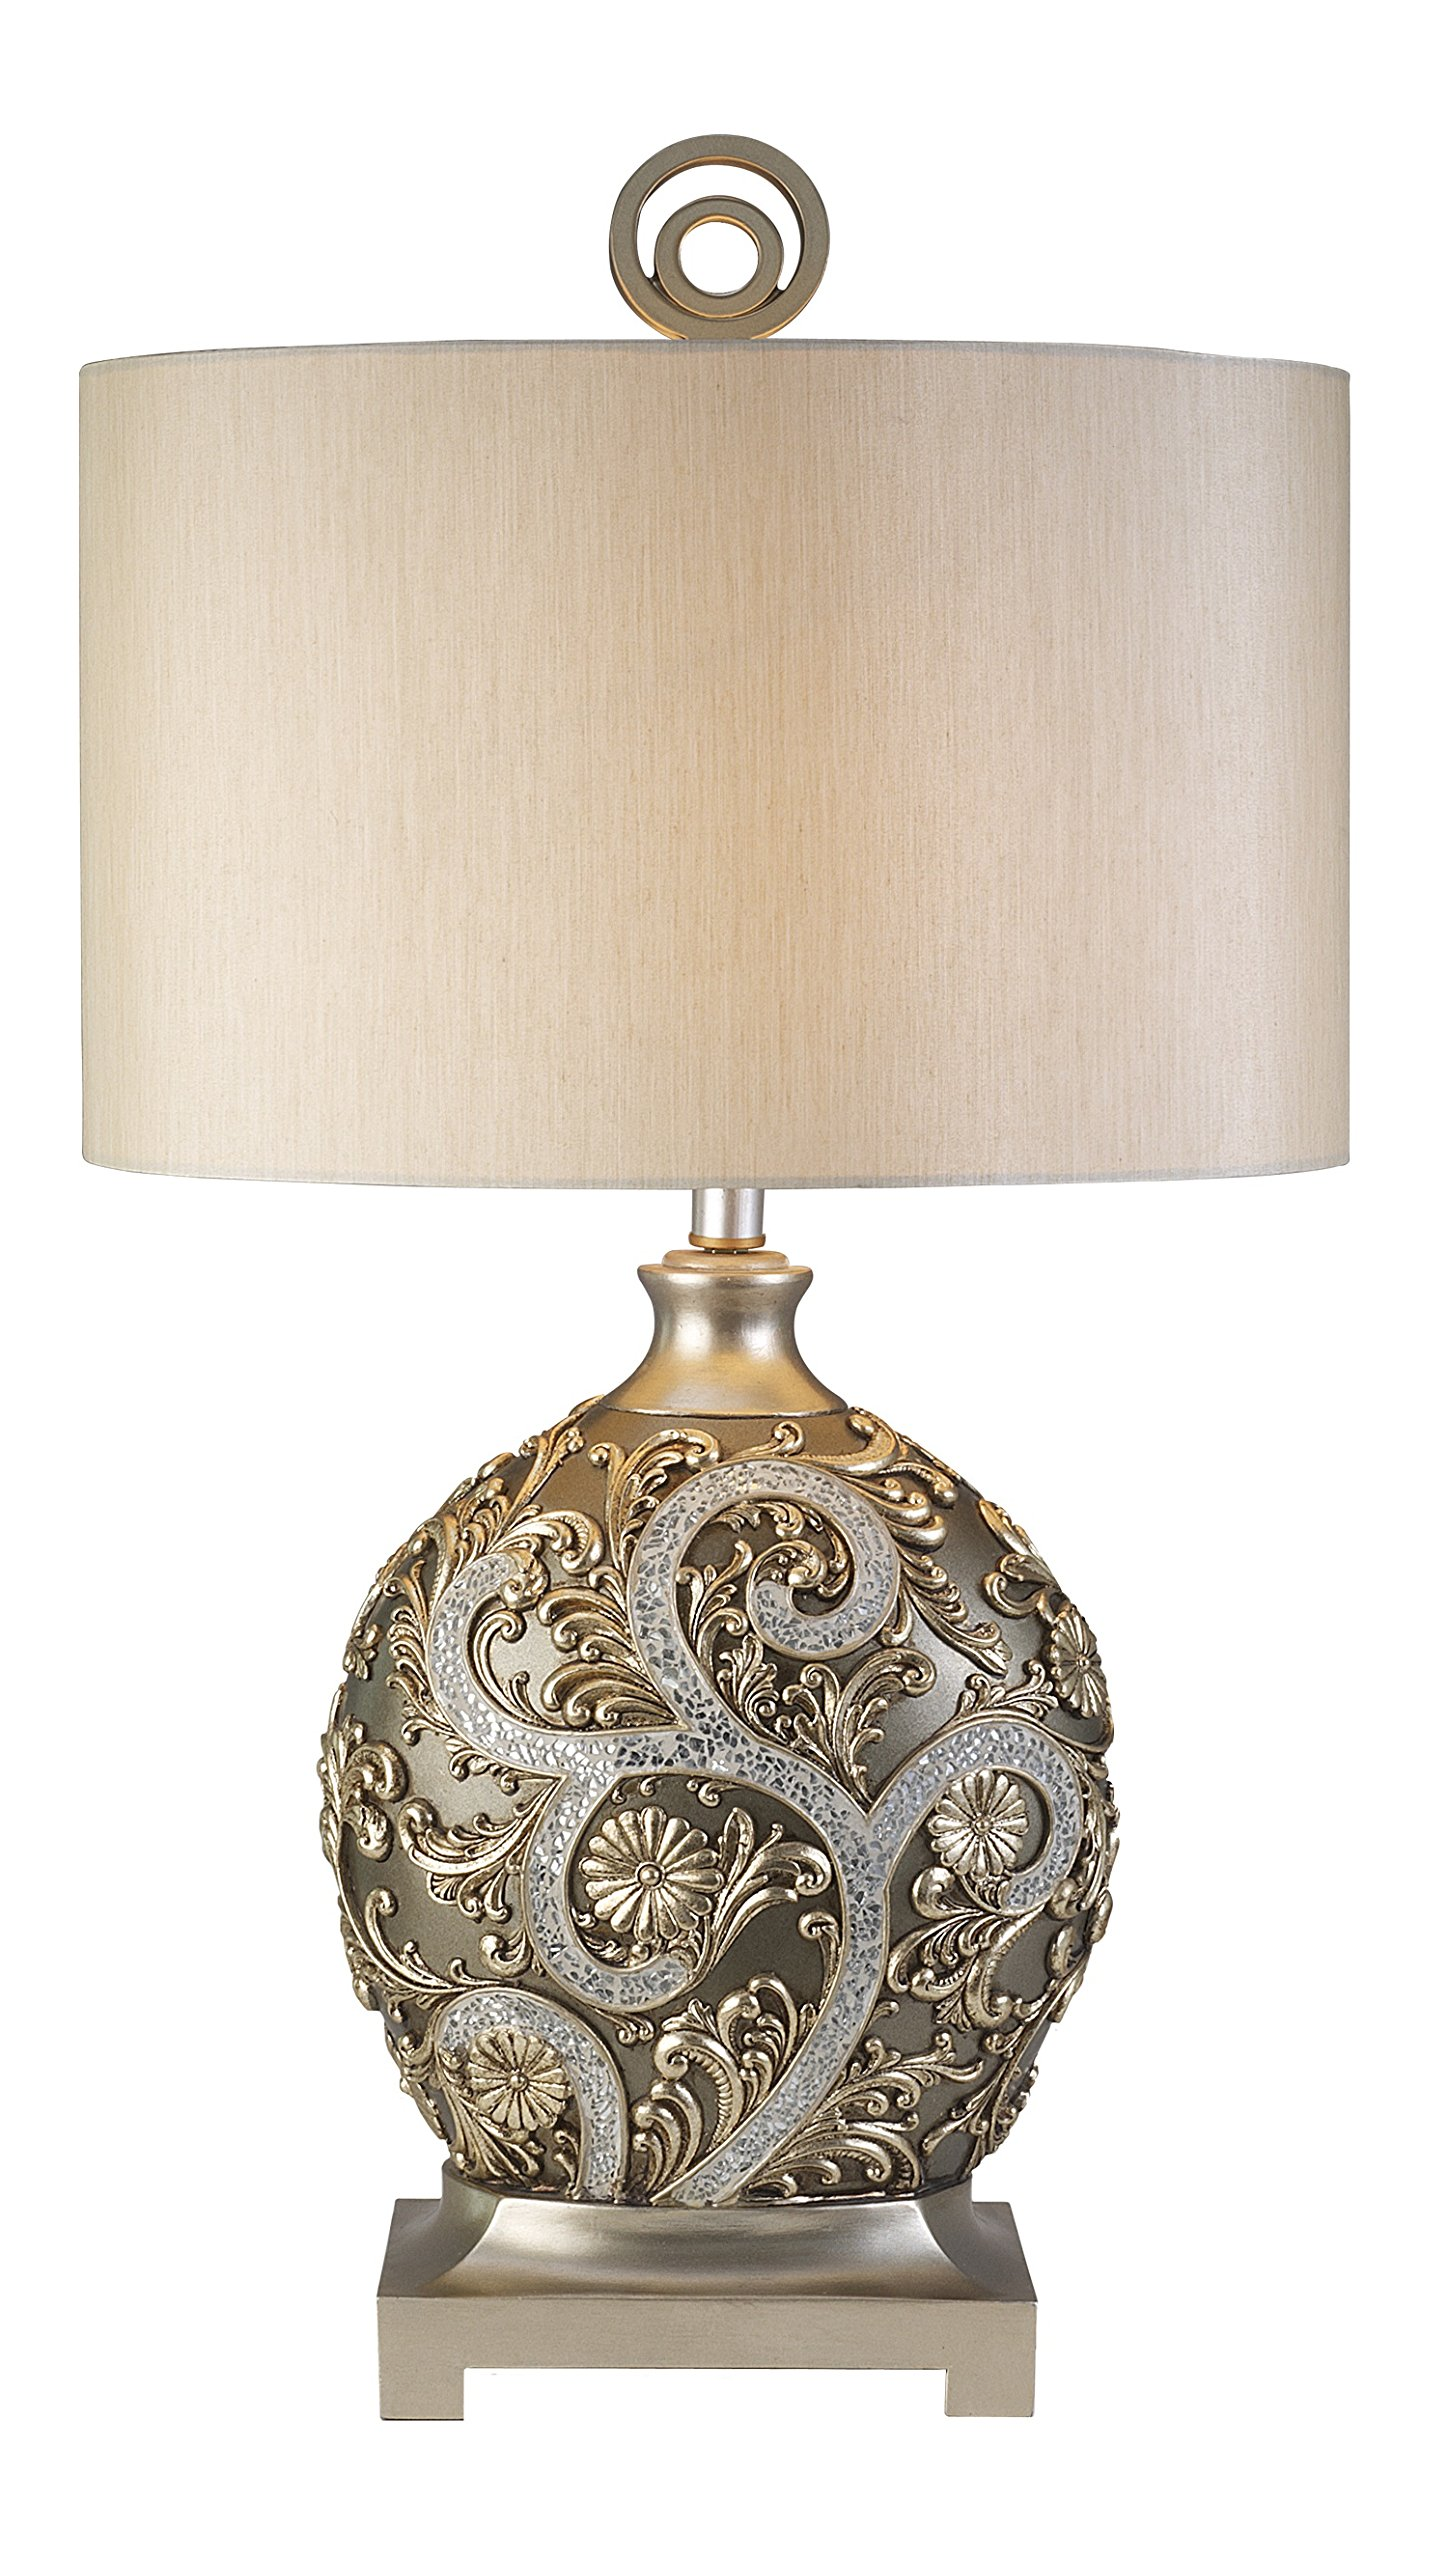 OK LIGHTING 12.25 in. Champagne Gold with Silver Vine Table Lamp